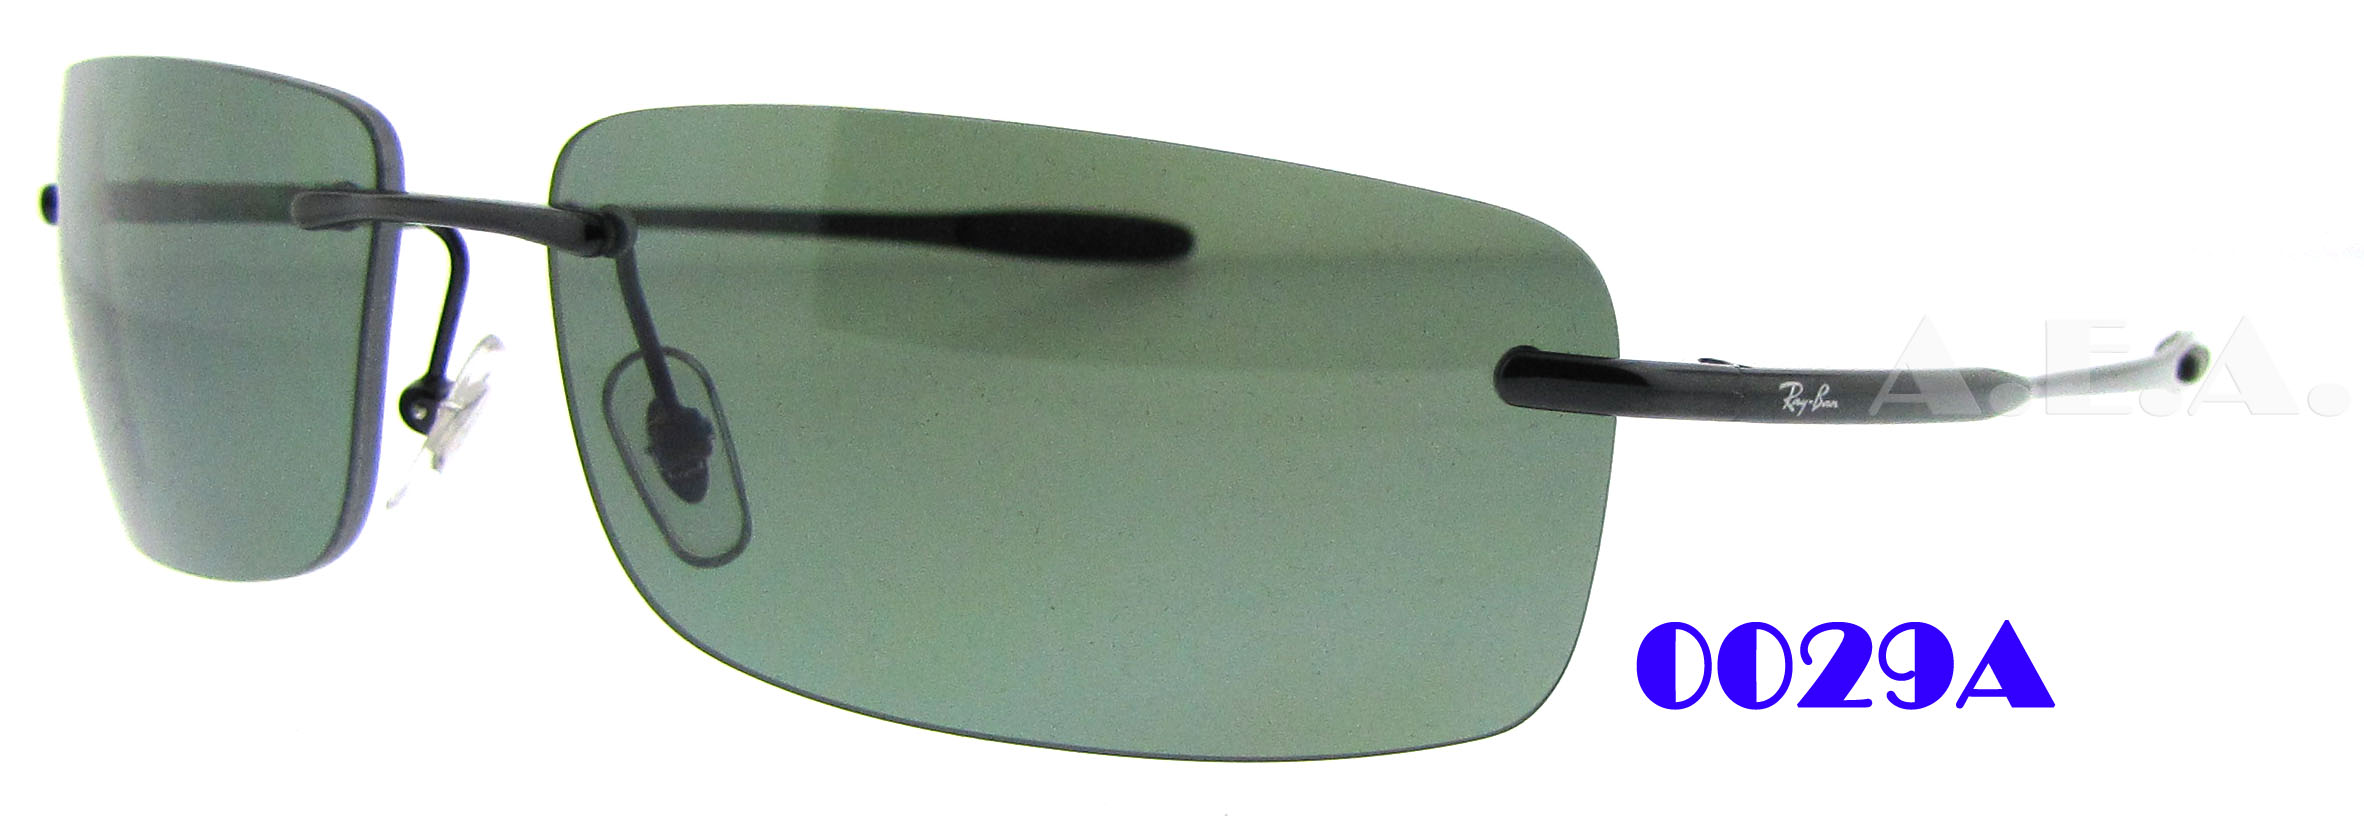 ray ban 3344  rb 3344 002/9a black by ray ban for men 61 14 130mm sunglasses